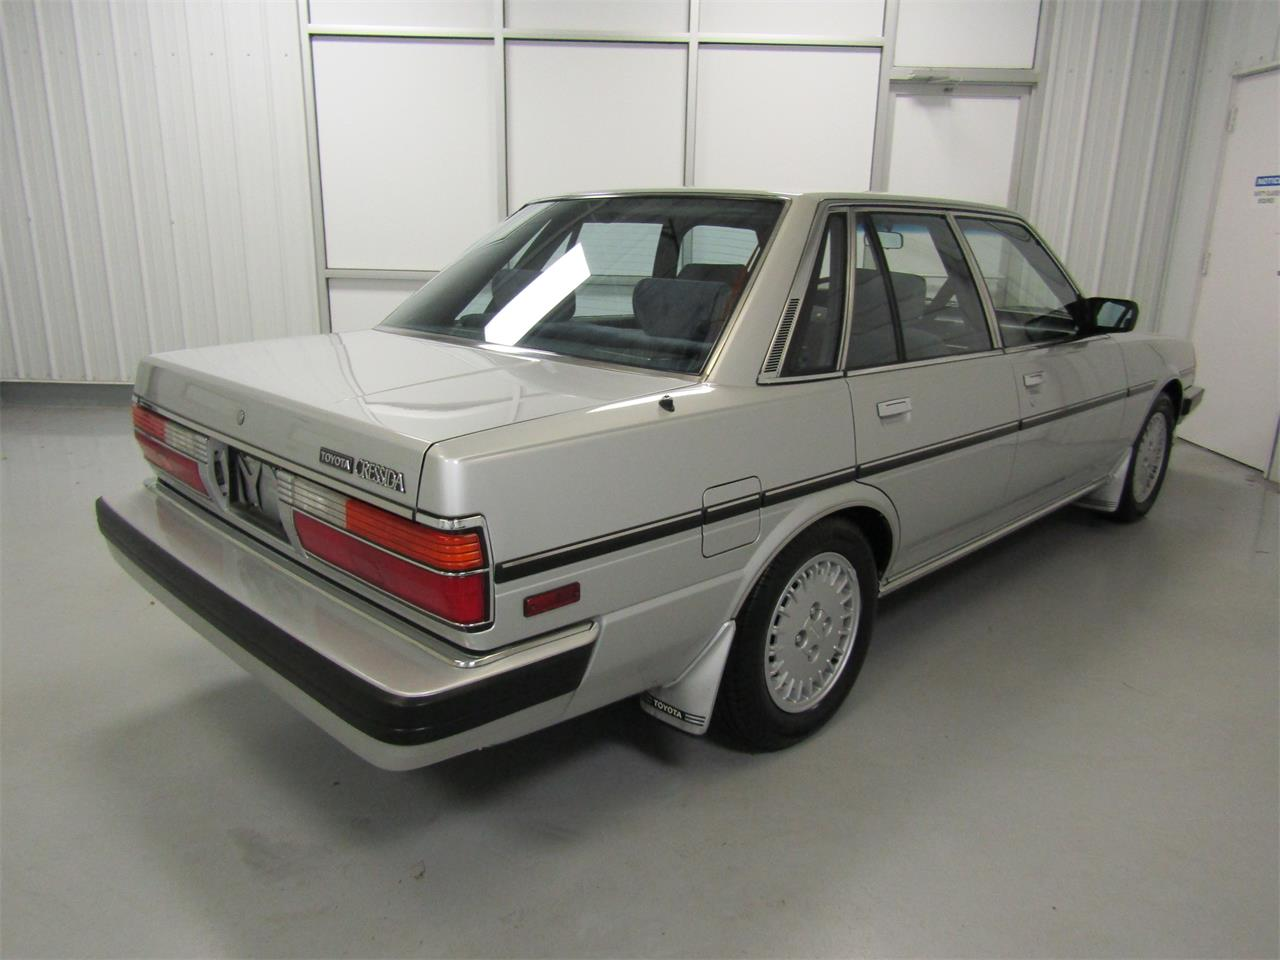 1985 Toyota Cressida for sale in Christiansburg, VA – photo 9